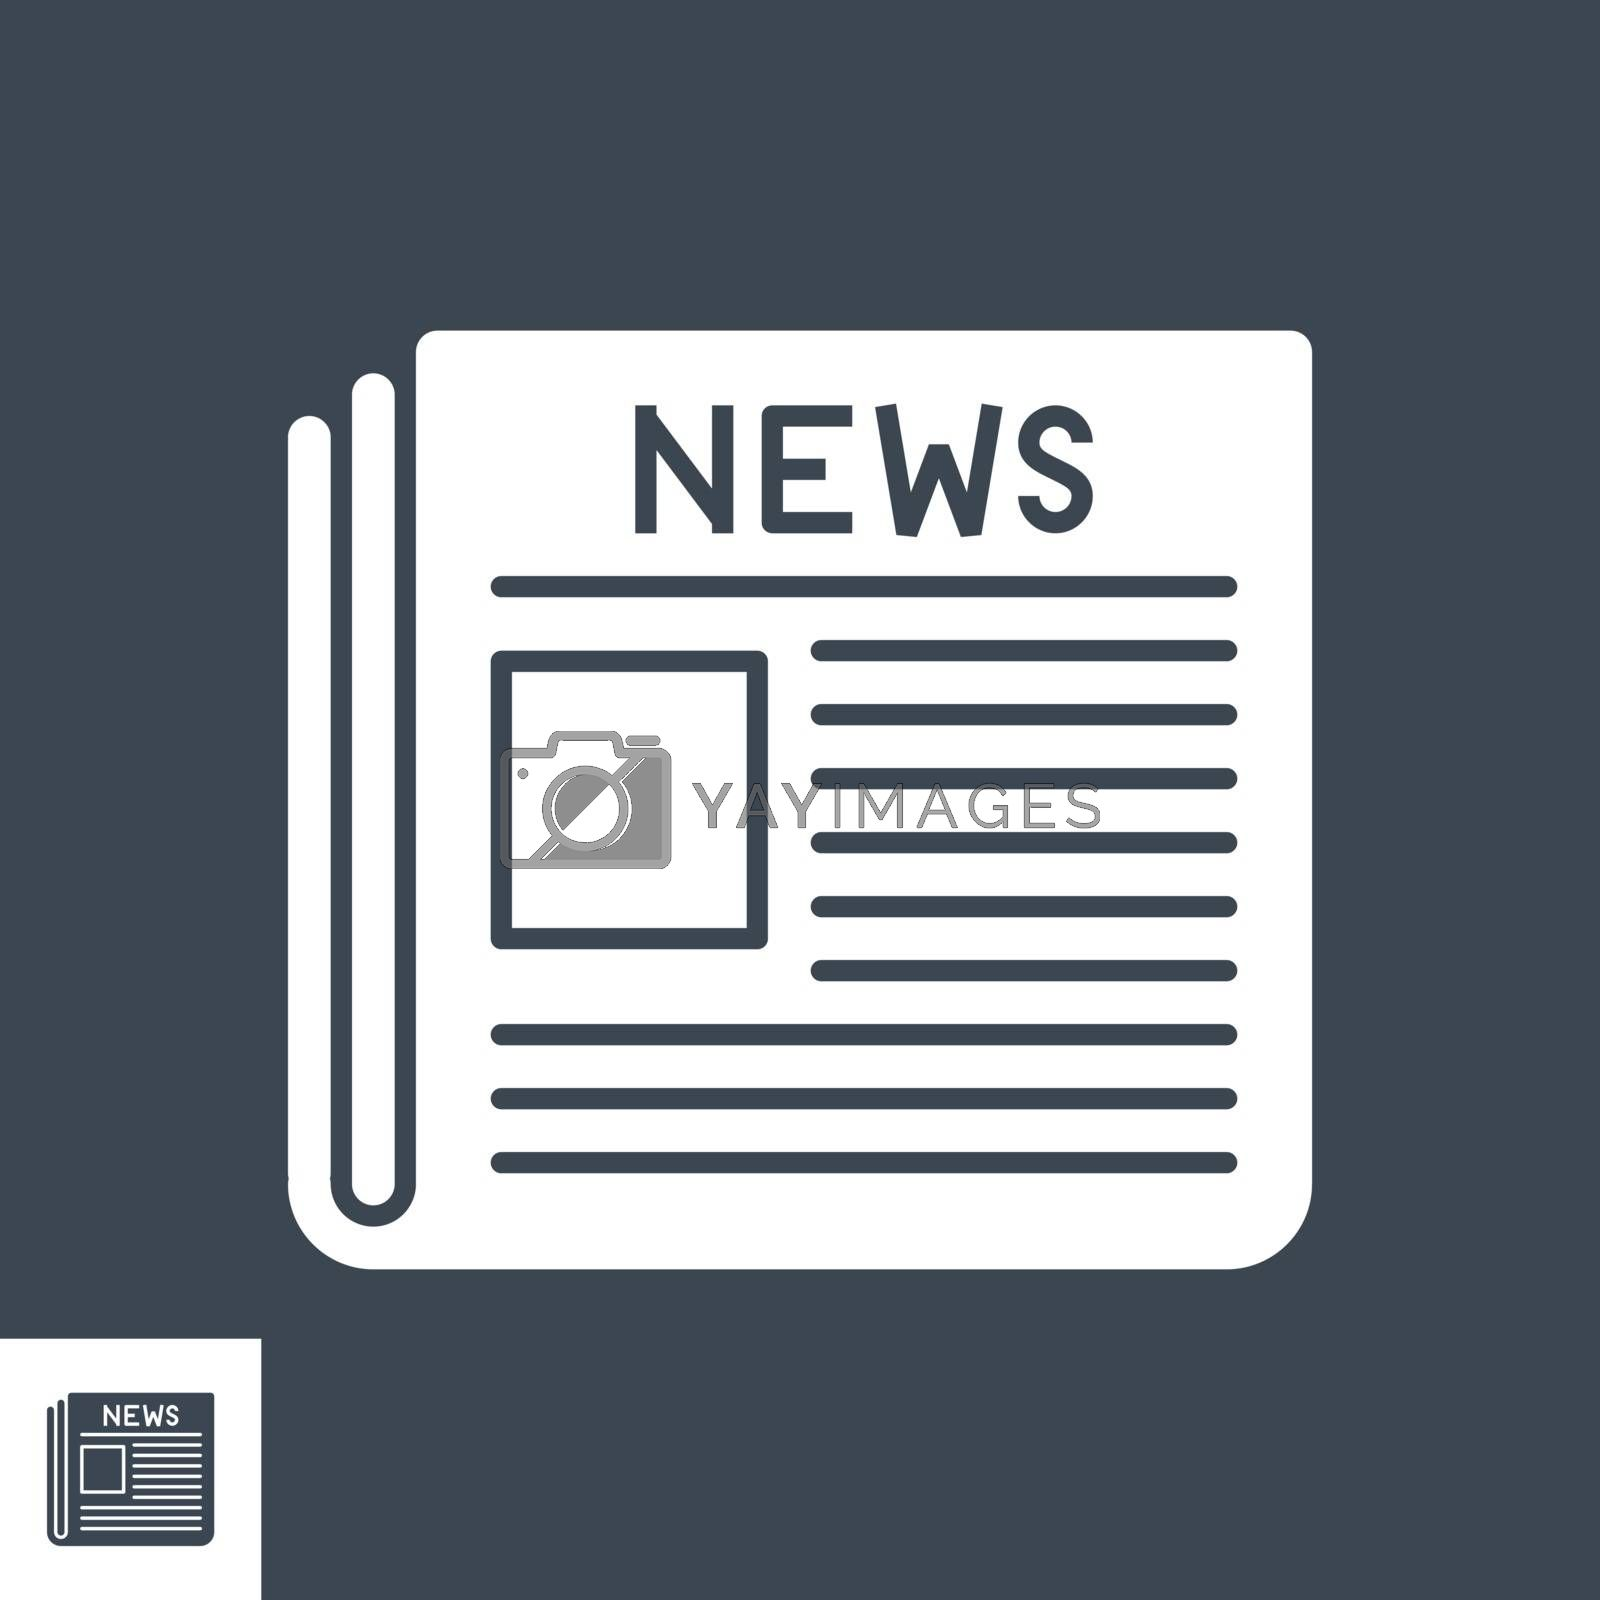 Newspaper Glyph Vector Icon. Flat icon isolated on the black background. Editable EPS file. Vector illustration.